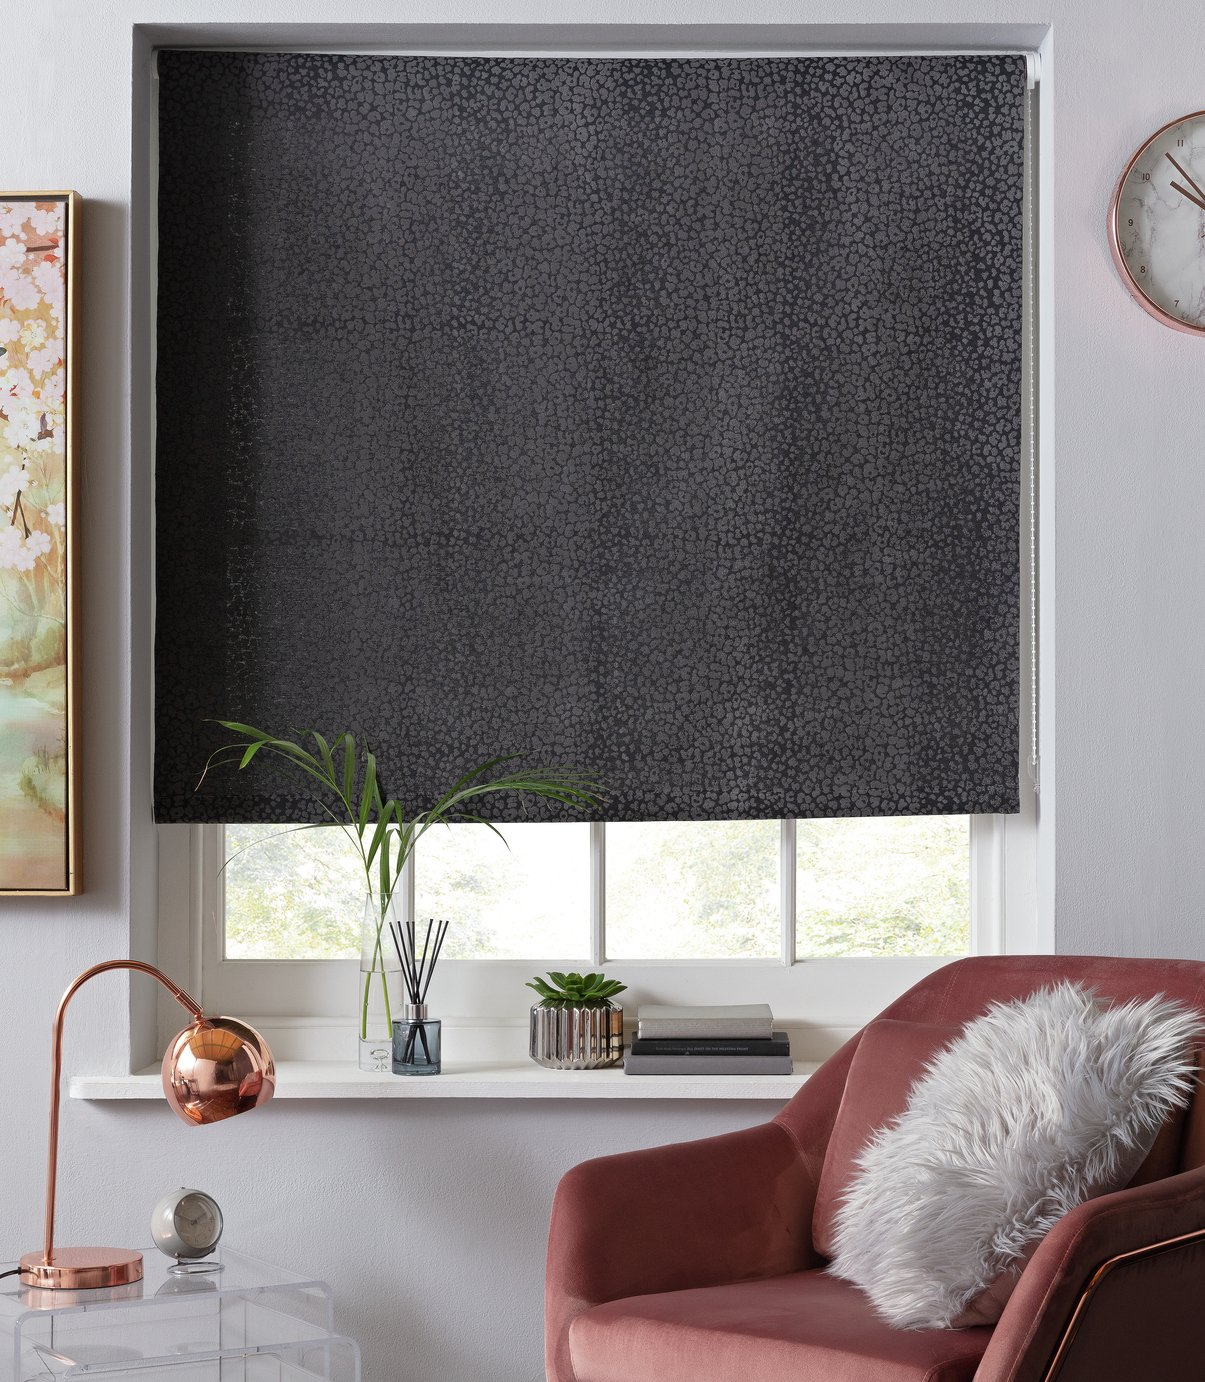 Argos Home Leopard Print Daylight Roller Blind - 6ft